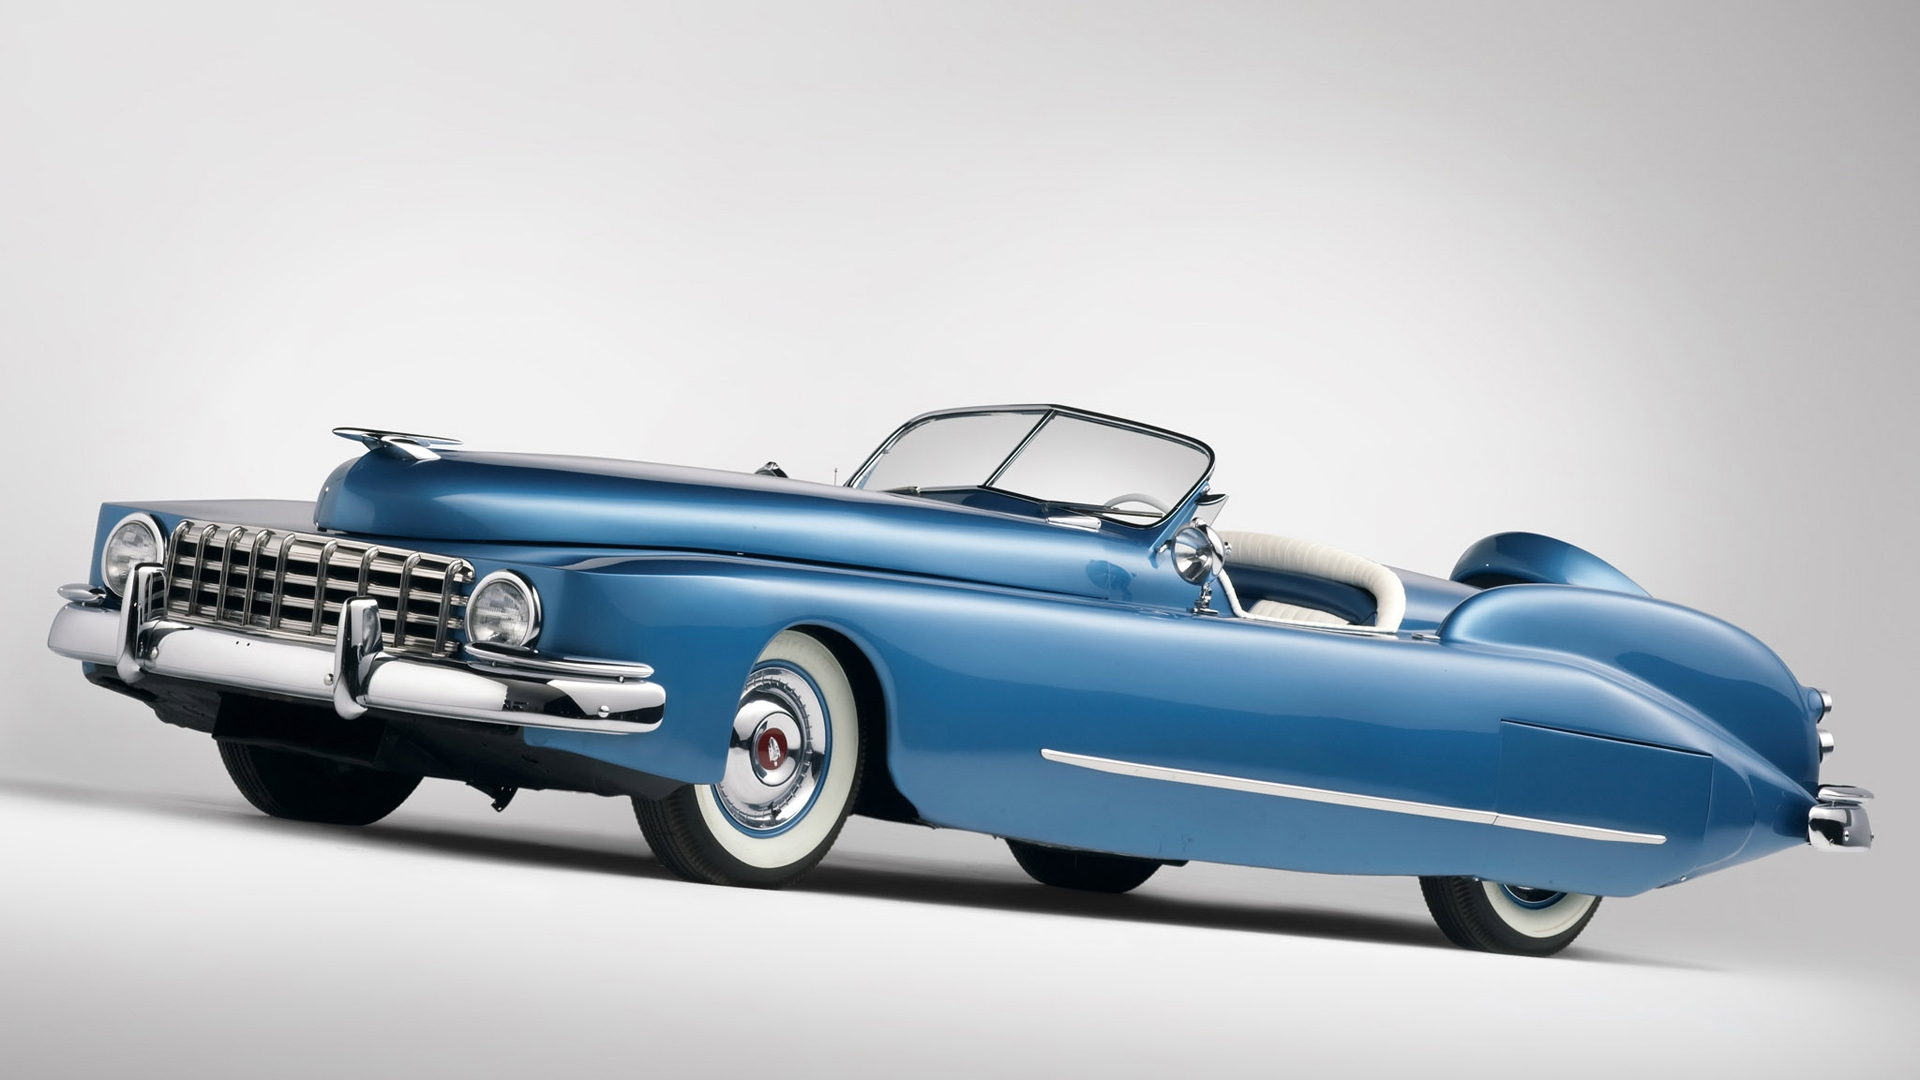 Classic Wallpapers Old Cars Wallpapers Desktop Backgrounds mercury 1920x1080